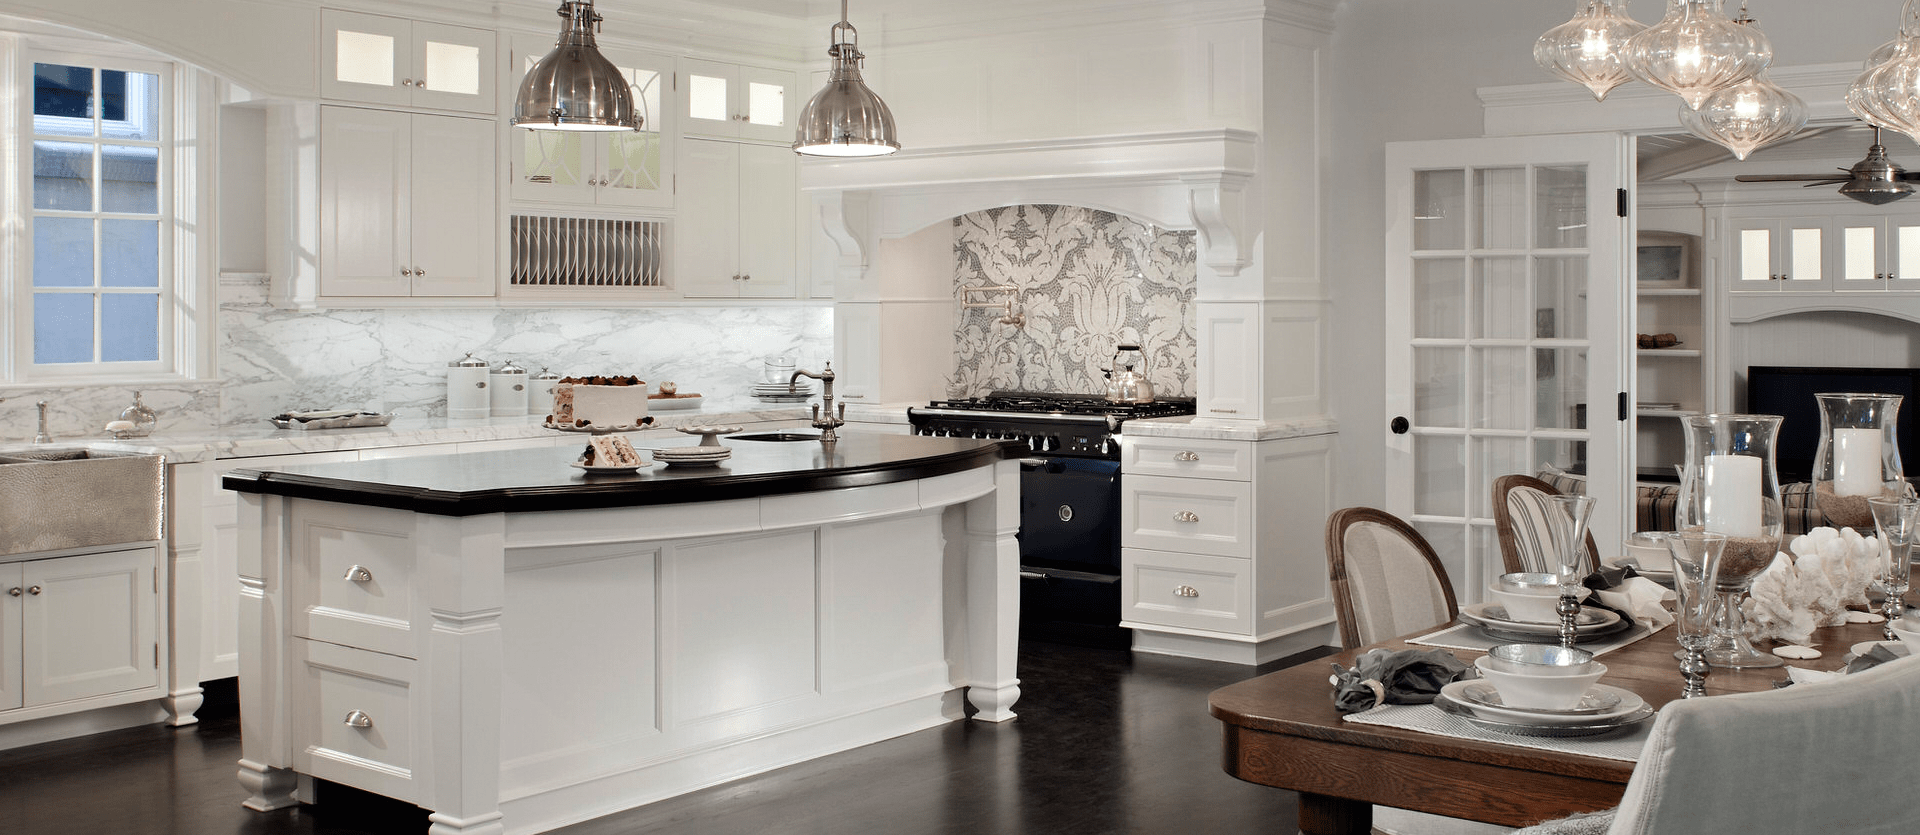 Kitchen Remodeling company in Morris County NJ - A&E Remodeling.